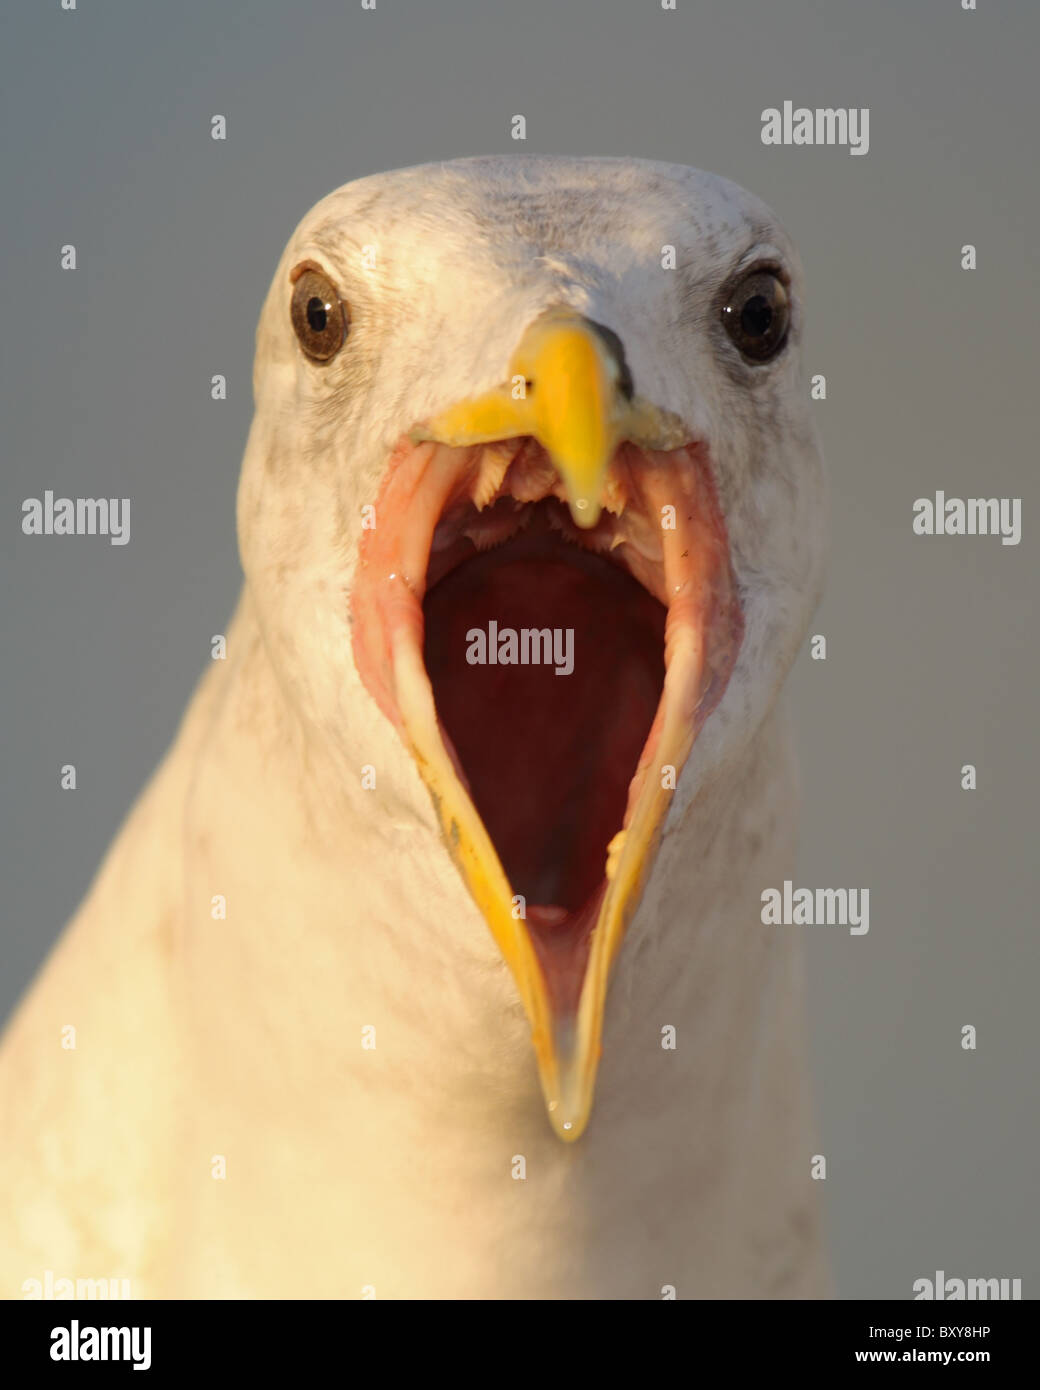 Western Gull calling straight on. - Stock Image